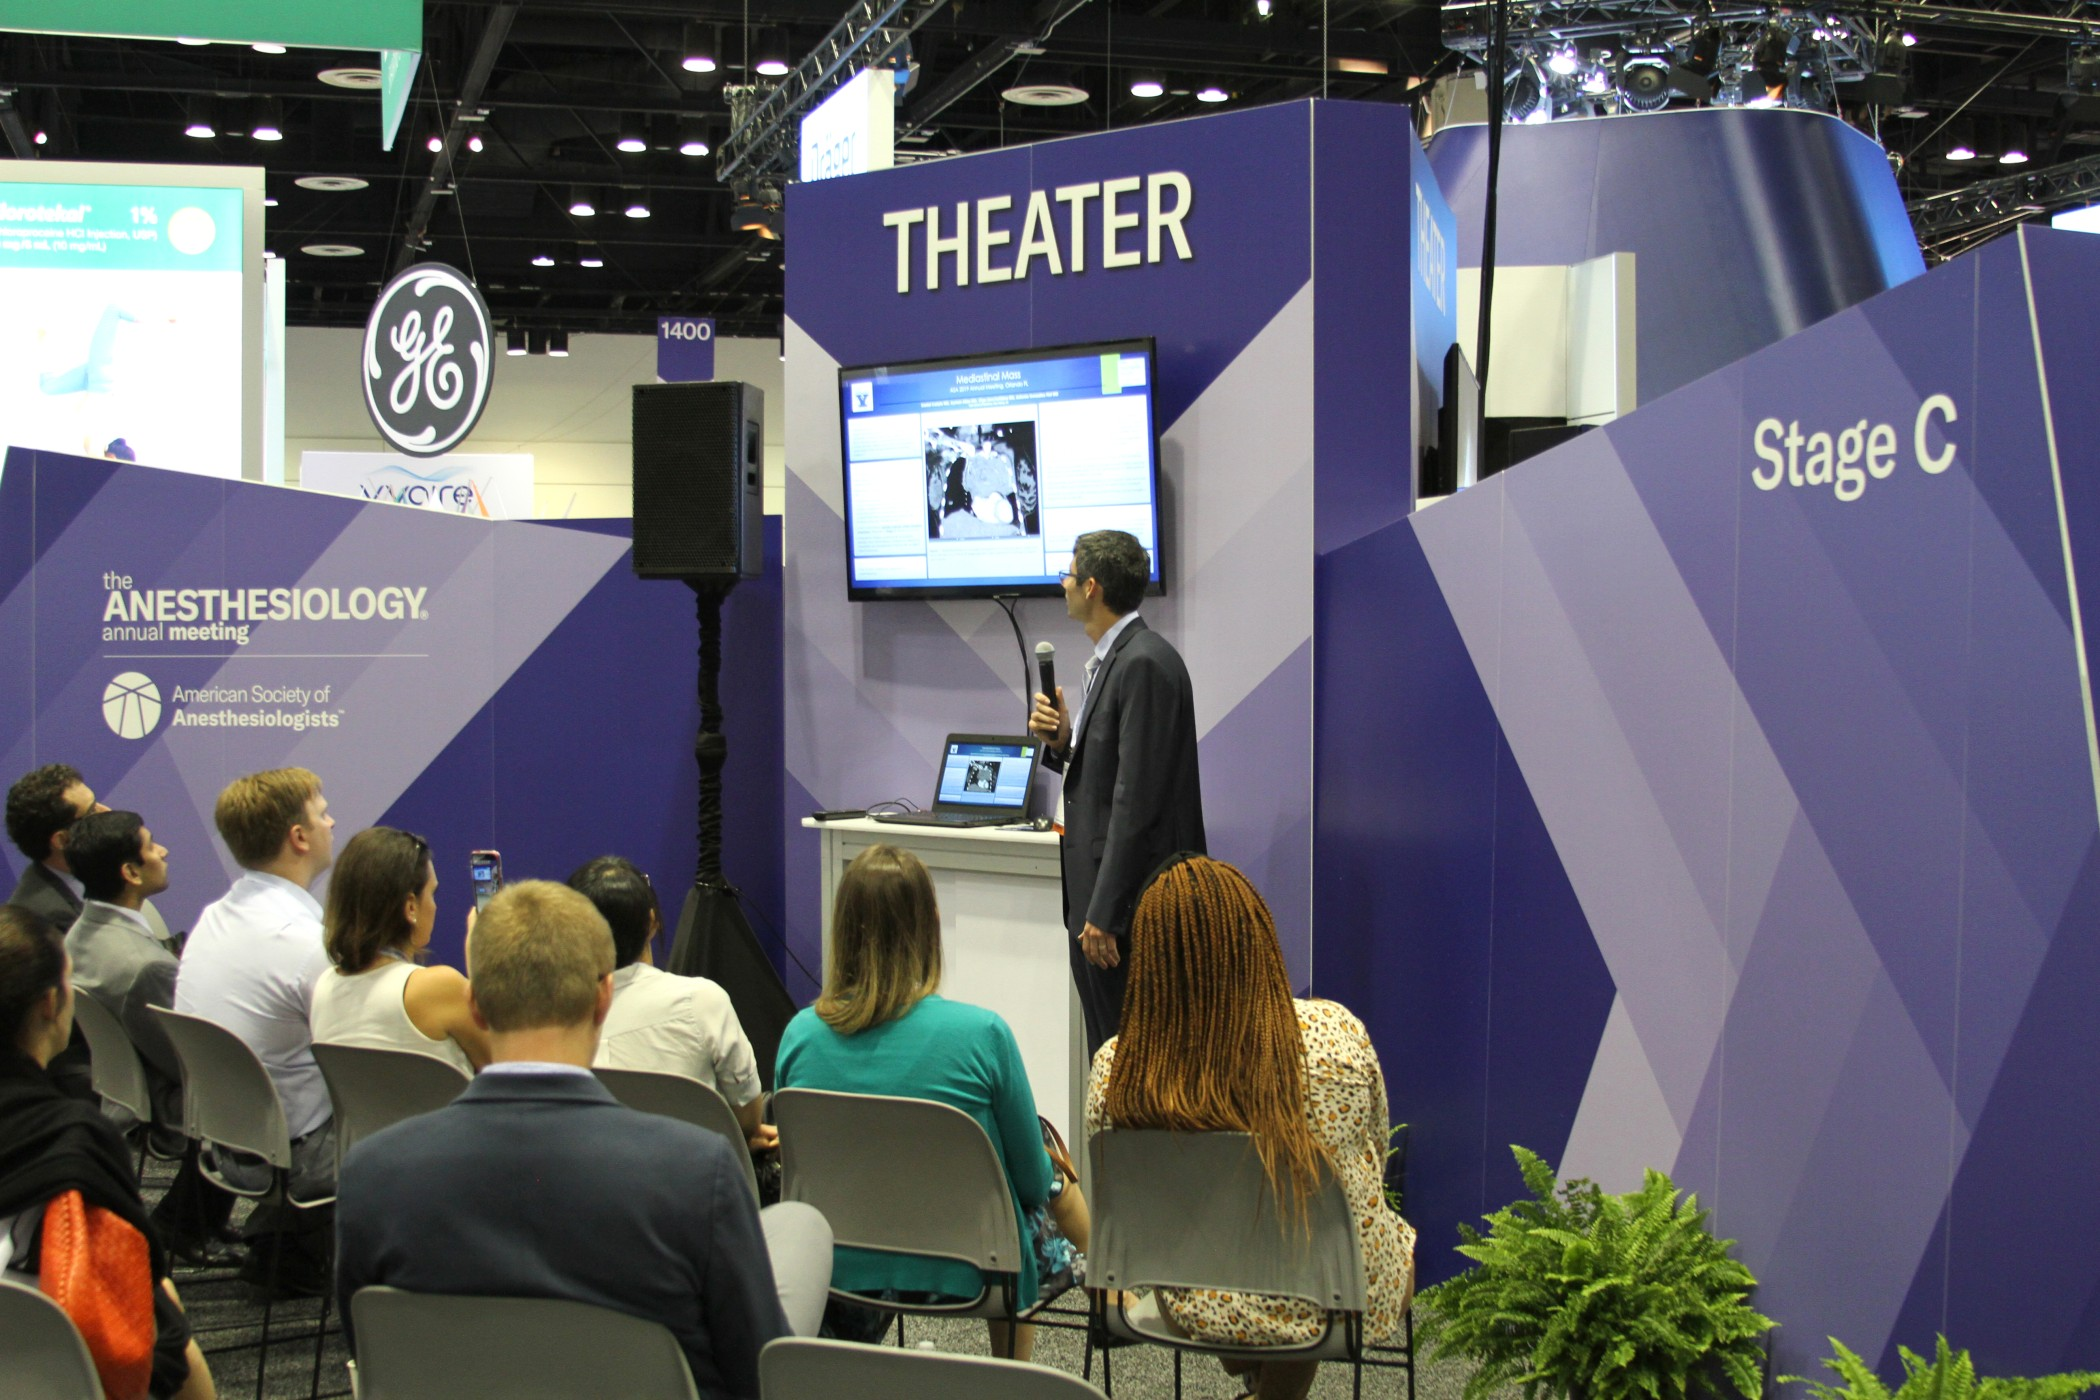 MED Talks On the Smart Stage in Exhibit Hall C